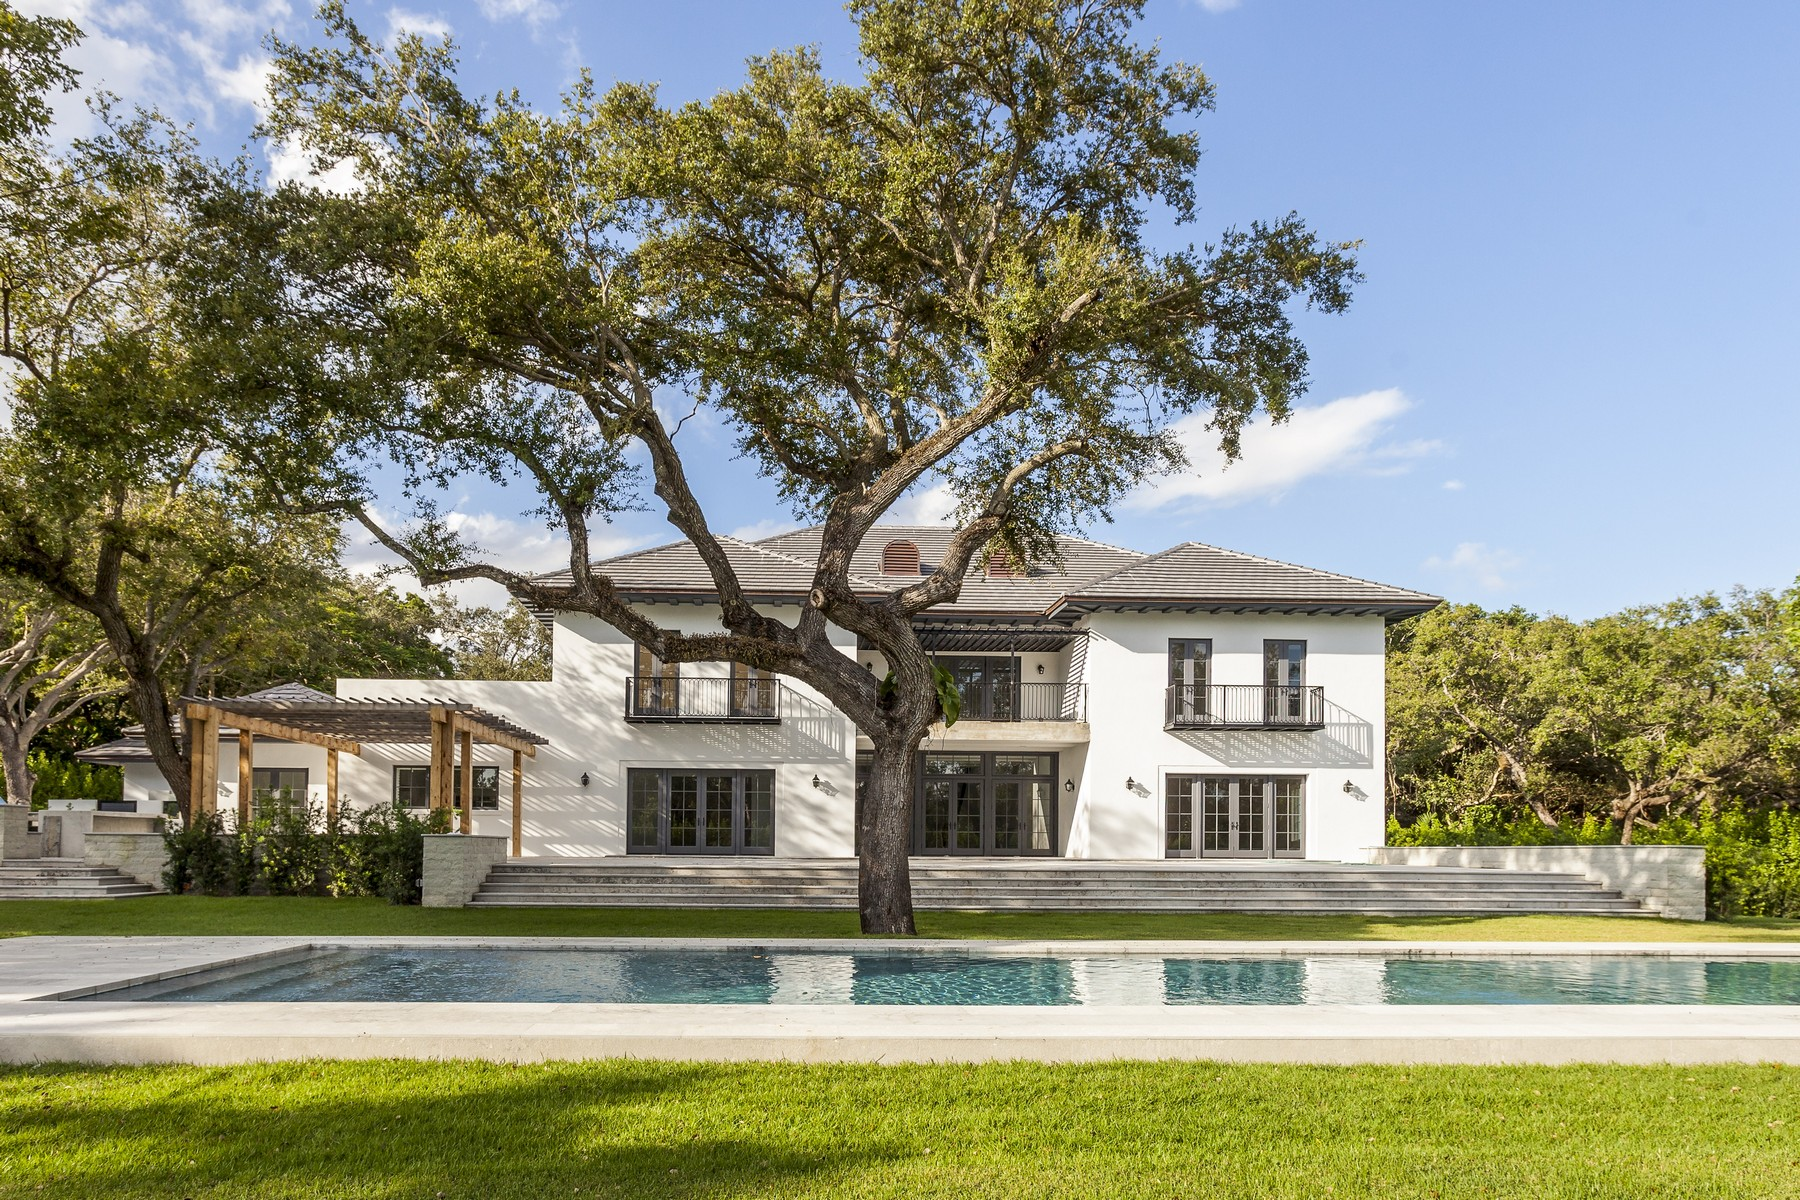 Single Family Home for Sale at 9550 Journeys End Rd Coral Gables, Florida 33156 United States